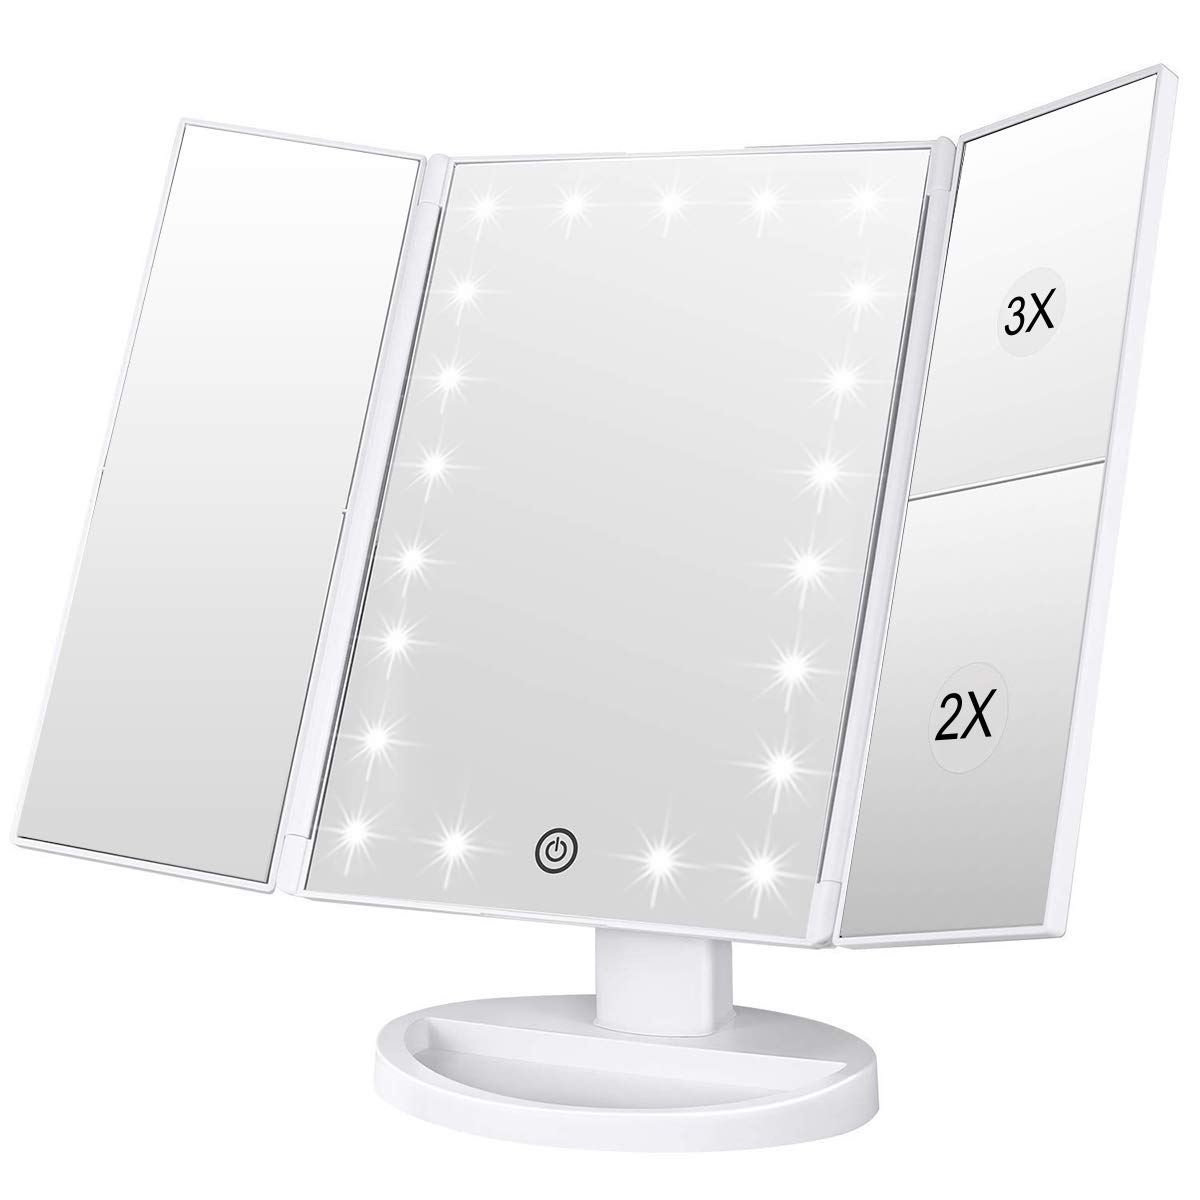 Lighted Makeup Mirror, Tri-fold Vanity Mirror with 3X/2X/1X Magnification,21 Natural LED Nights and Touch Screen, Batteries and USB Power Supply Adjustable Tabletop Cosmetic Mirror (White) by WEILY